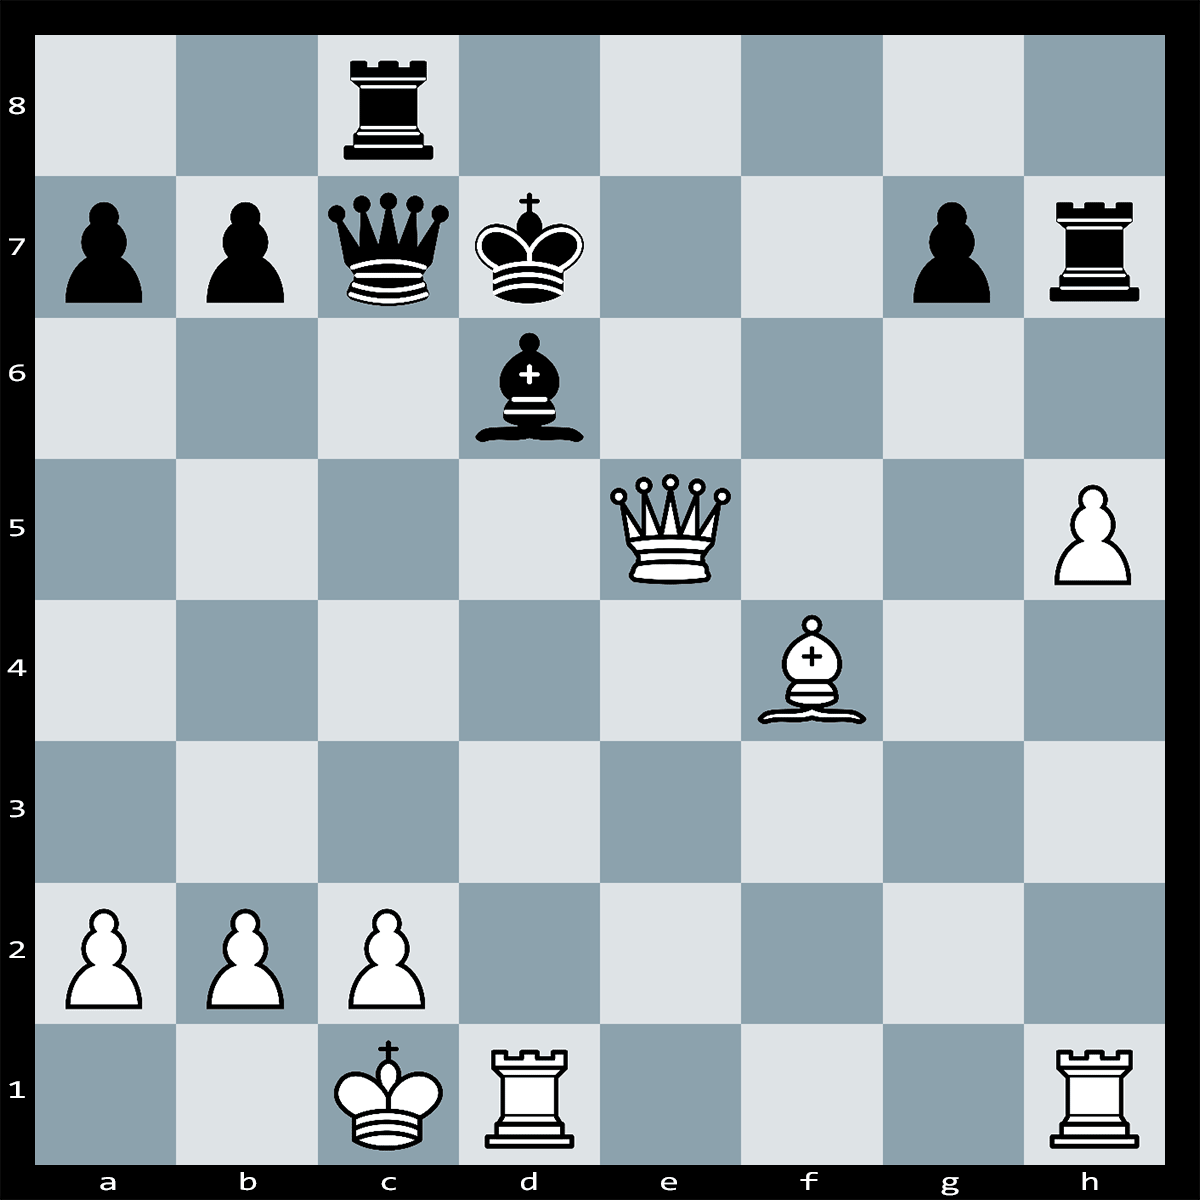 White can force checkmate in 4 moves. Can you see how?